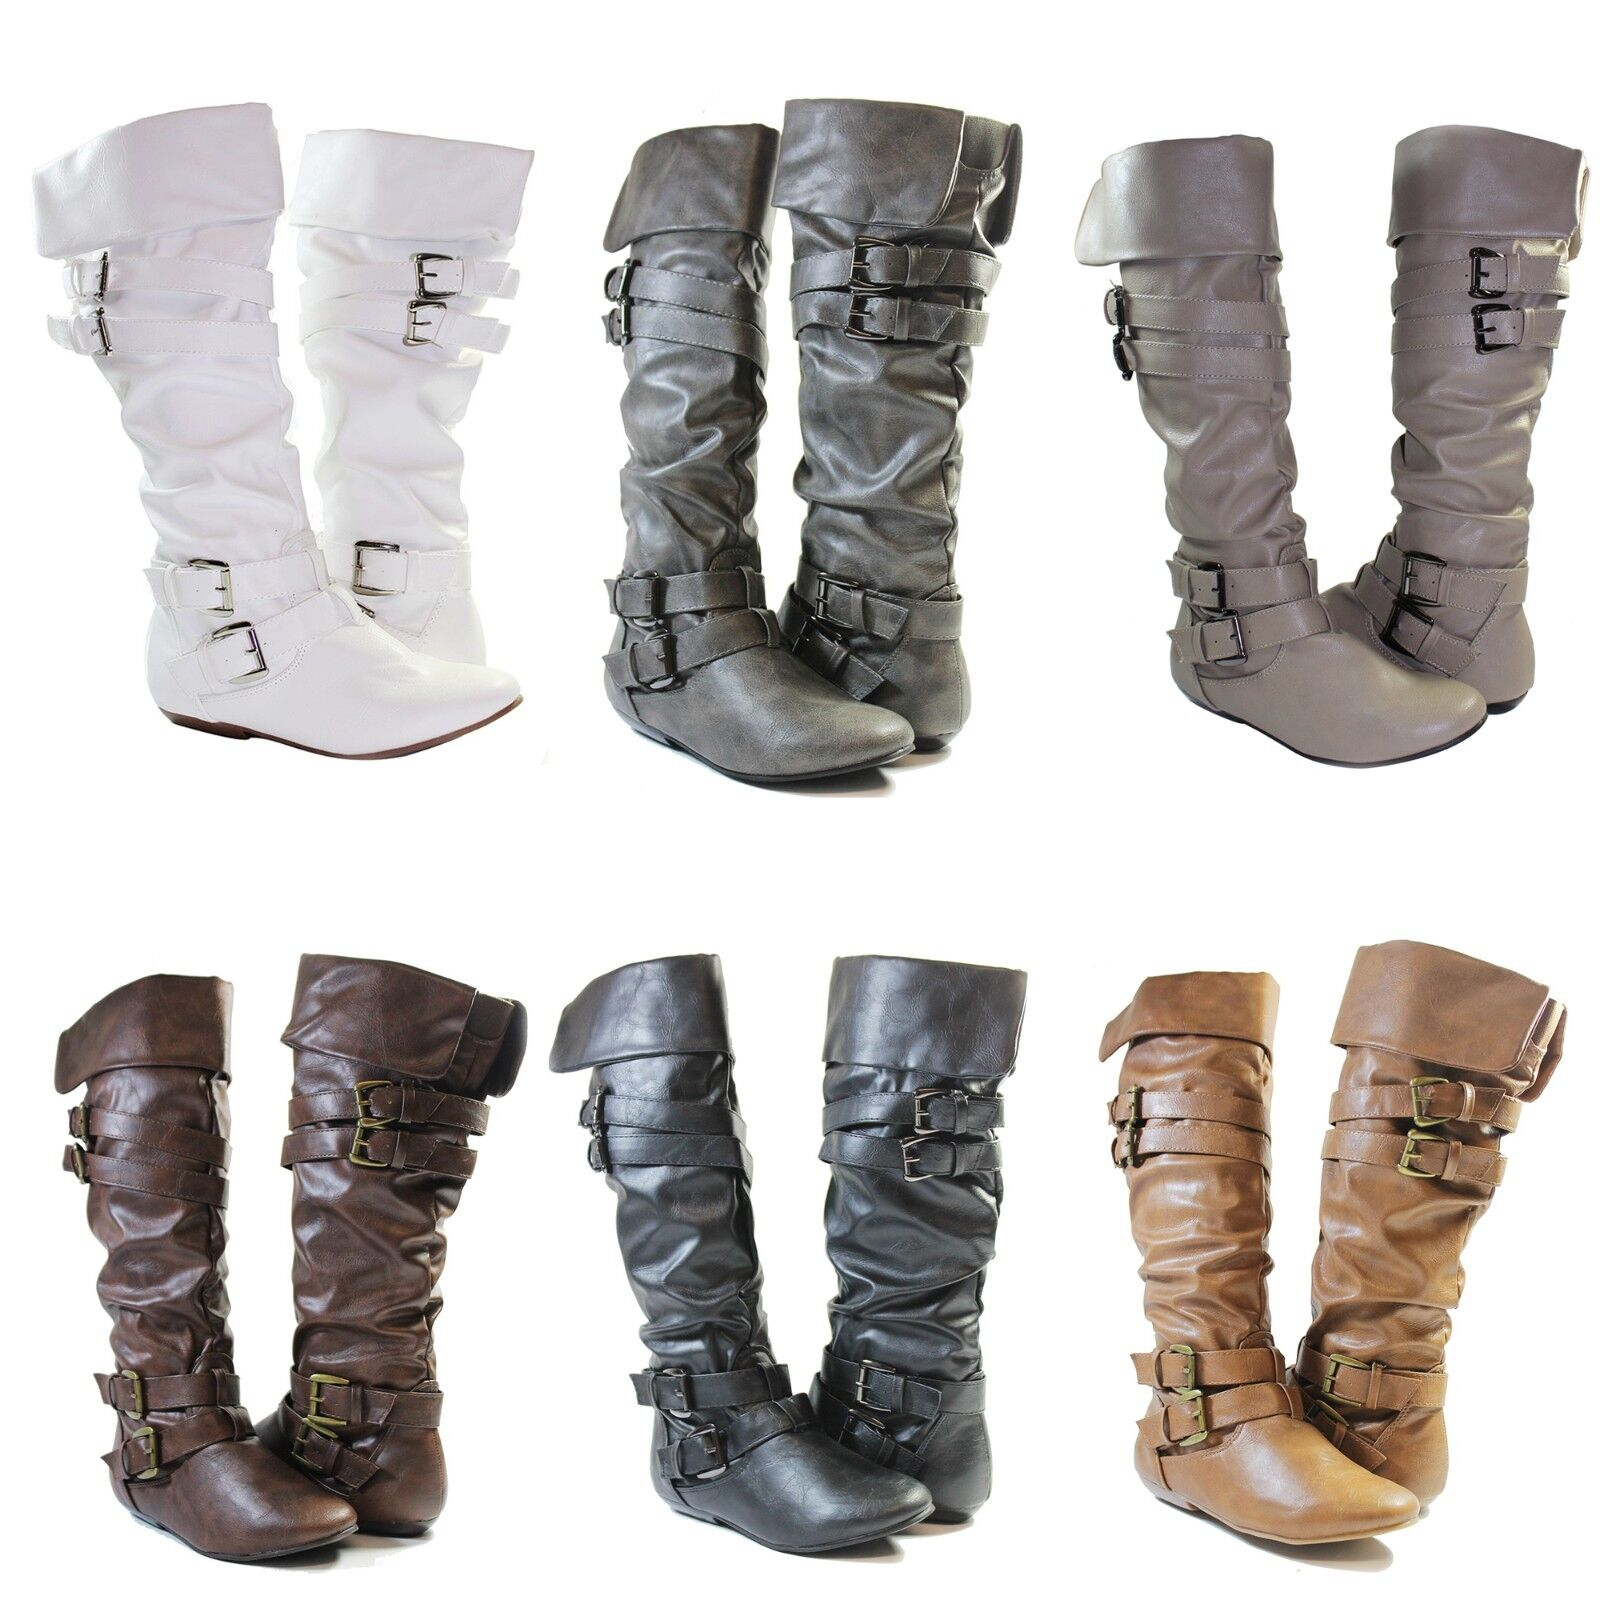 Leather boots for women - deals on 1001 Blocks